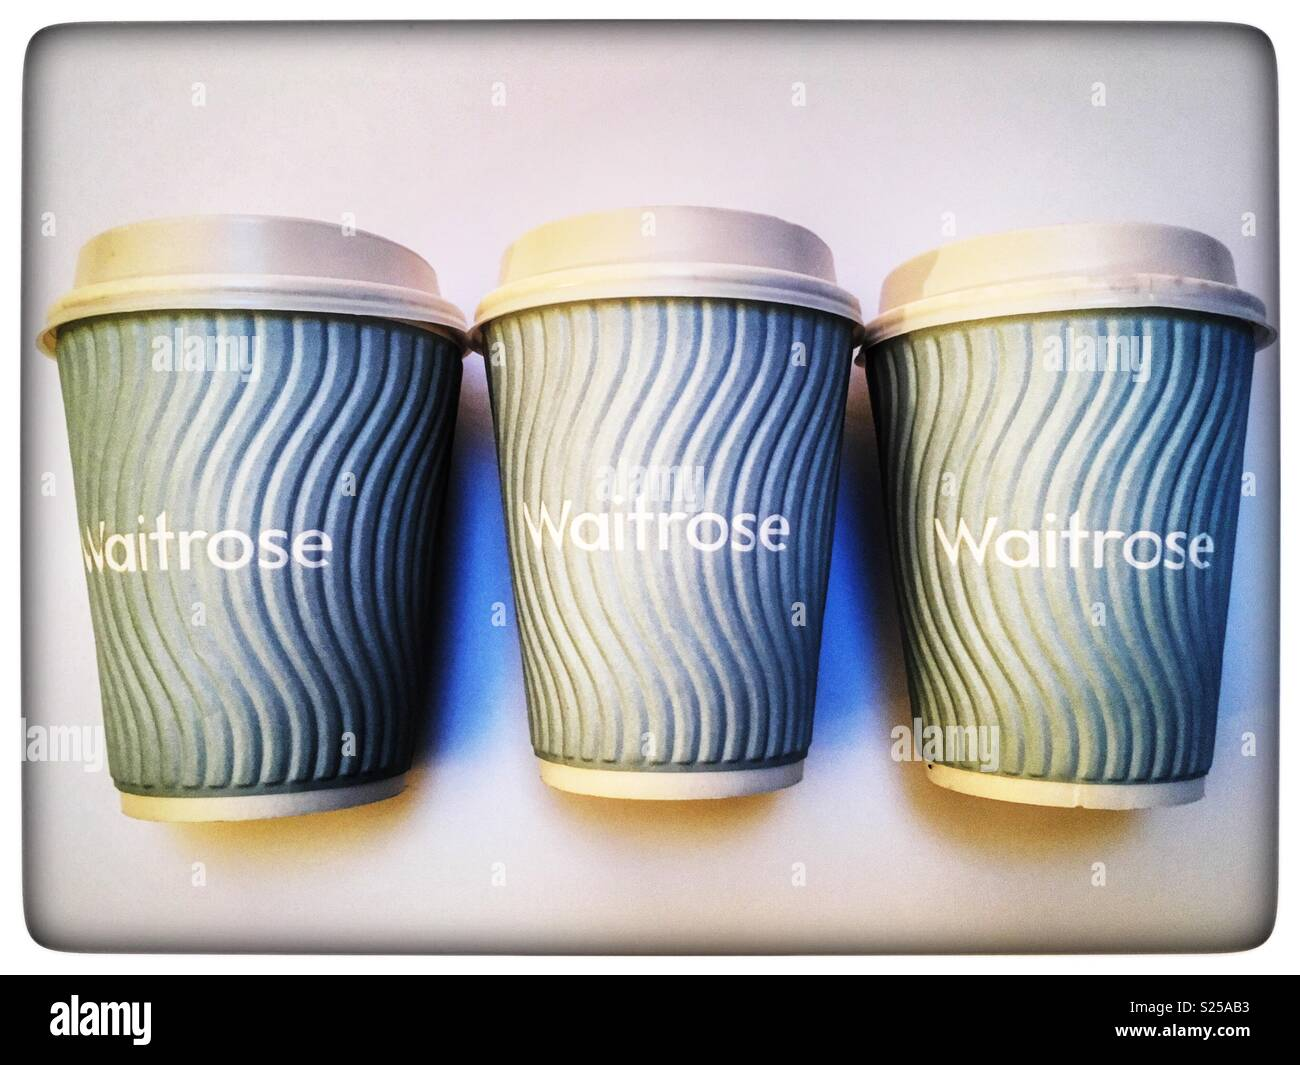 Waitrose non-recyclable coffee cups which are no longer being used - Stock Image